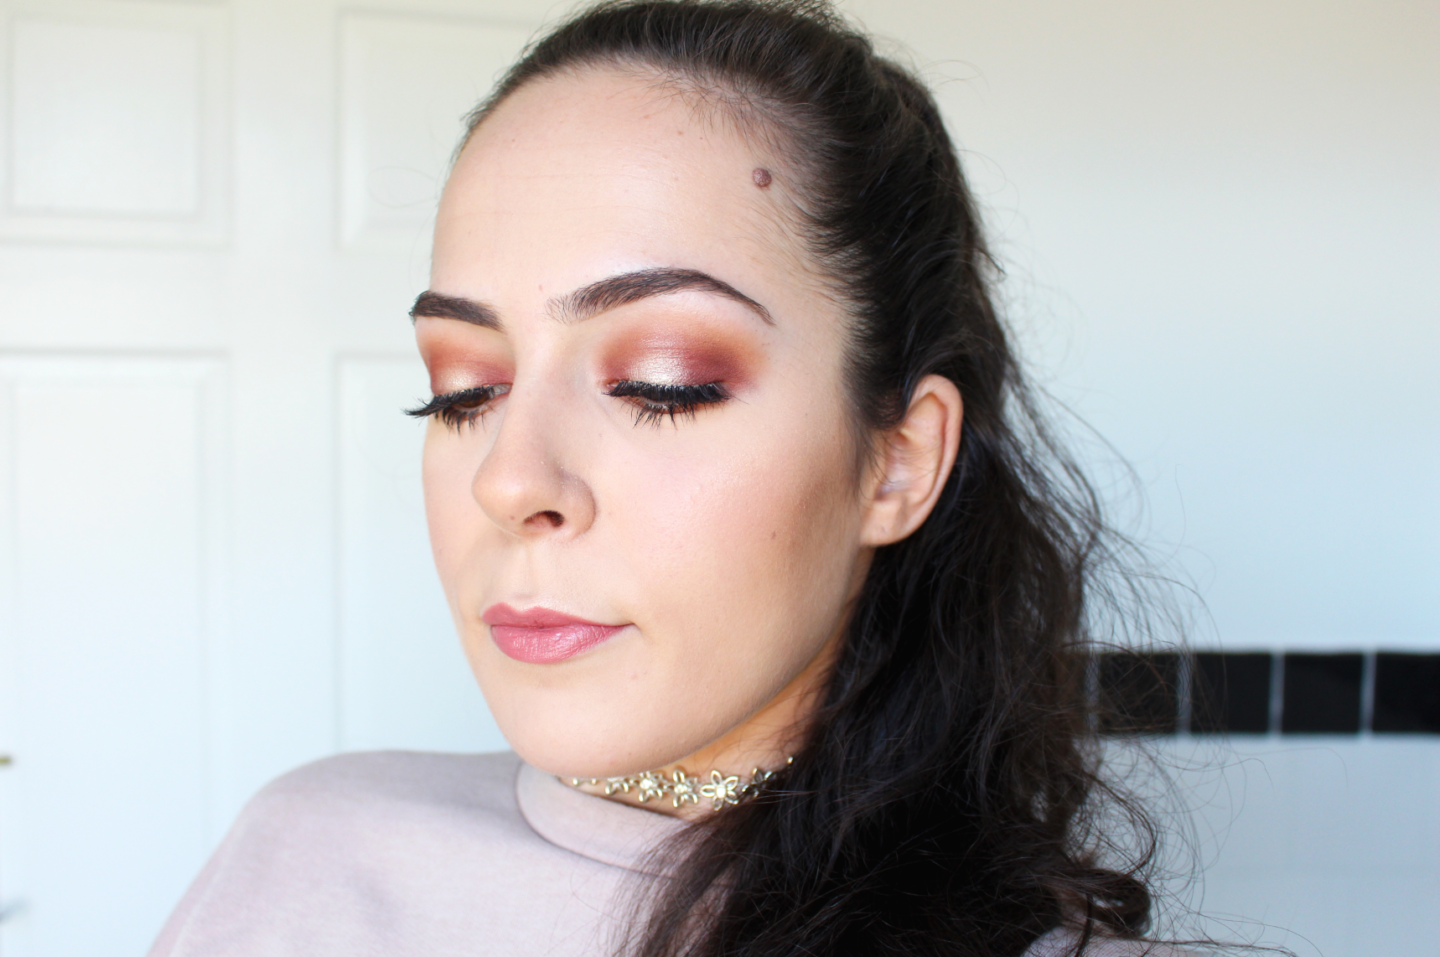 AN EASY GUIDE TO HALO EYE MAKEUP